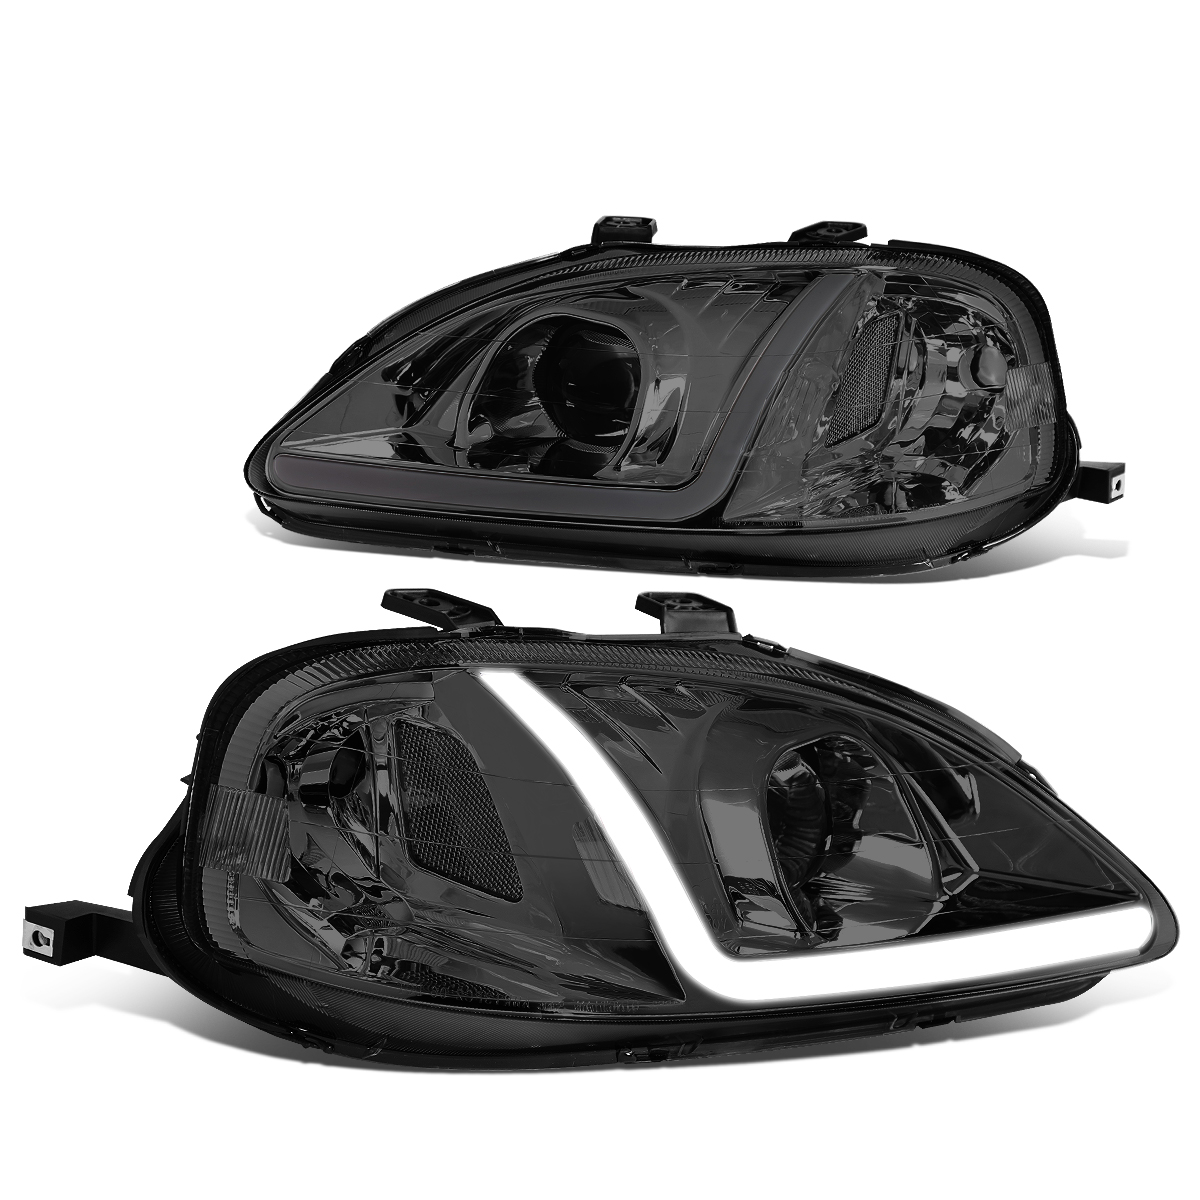 DNA Motoring HL-LB-HC99-SM-CL1 LED DRL Projector Headlights For 99-00 Honda Civic